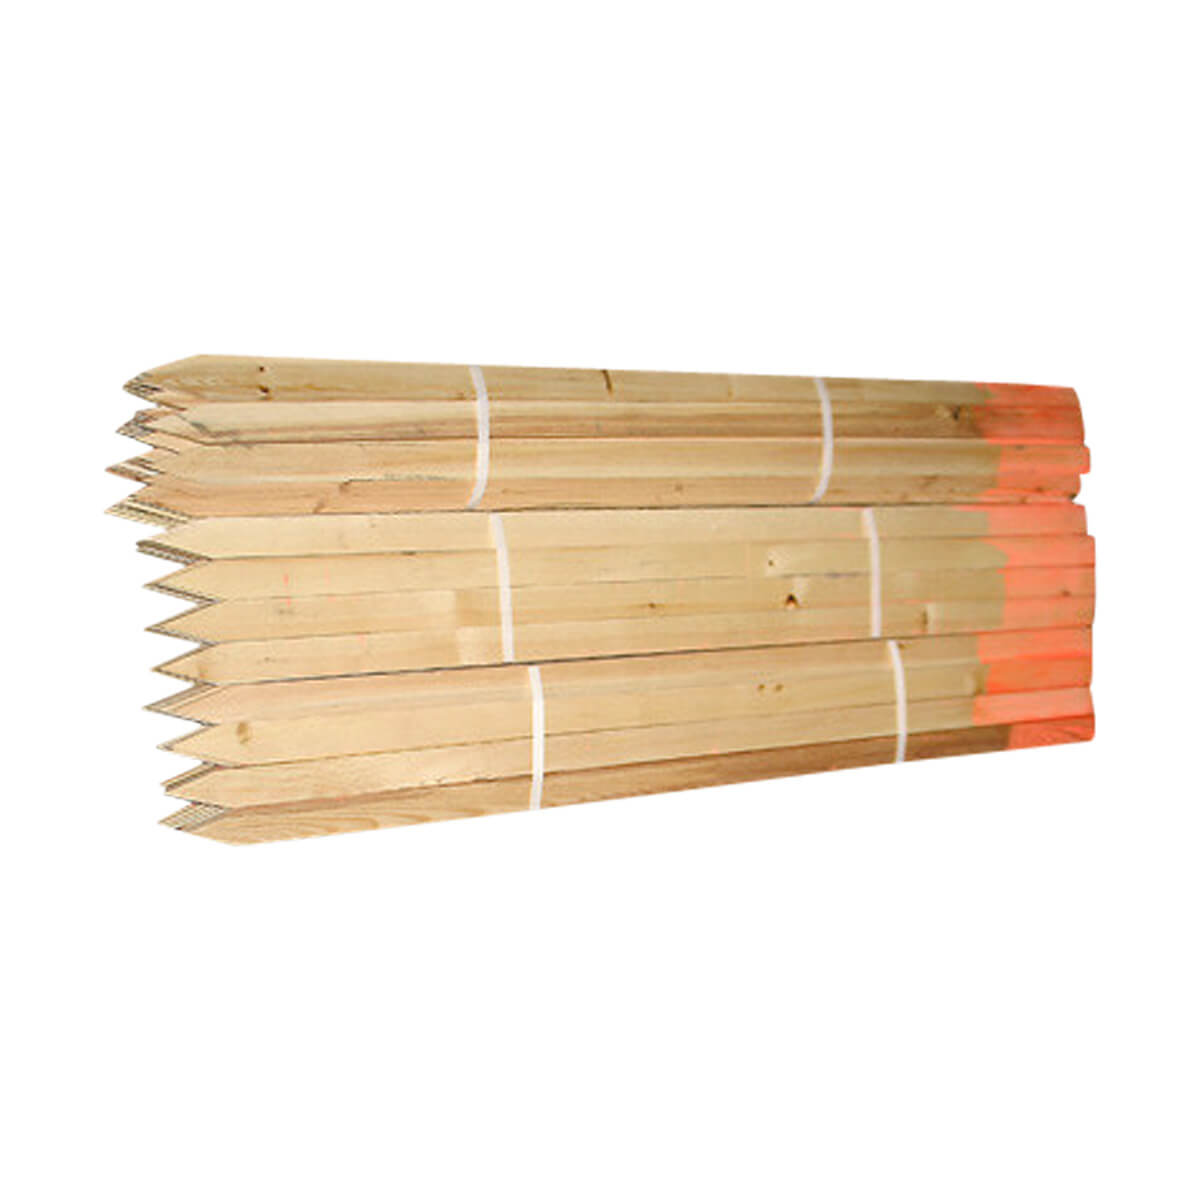 Sharpened Painted Lath - 3/8-in x 48-in - Orange Top